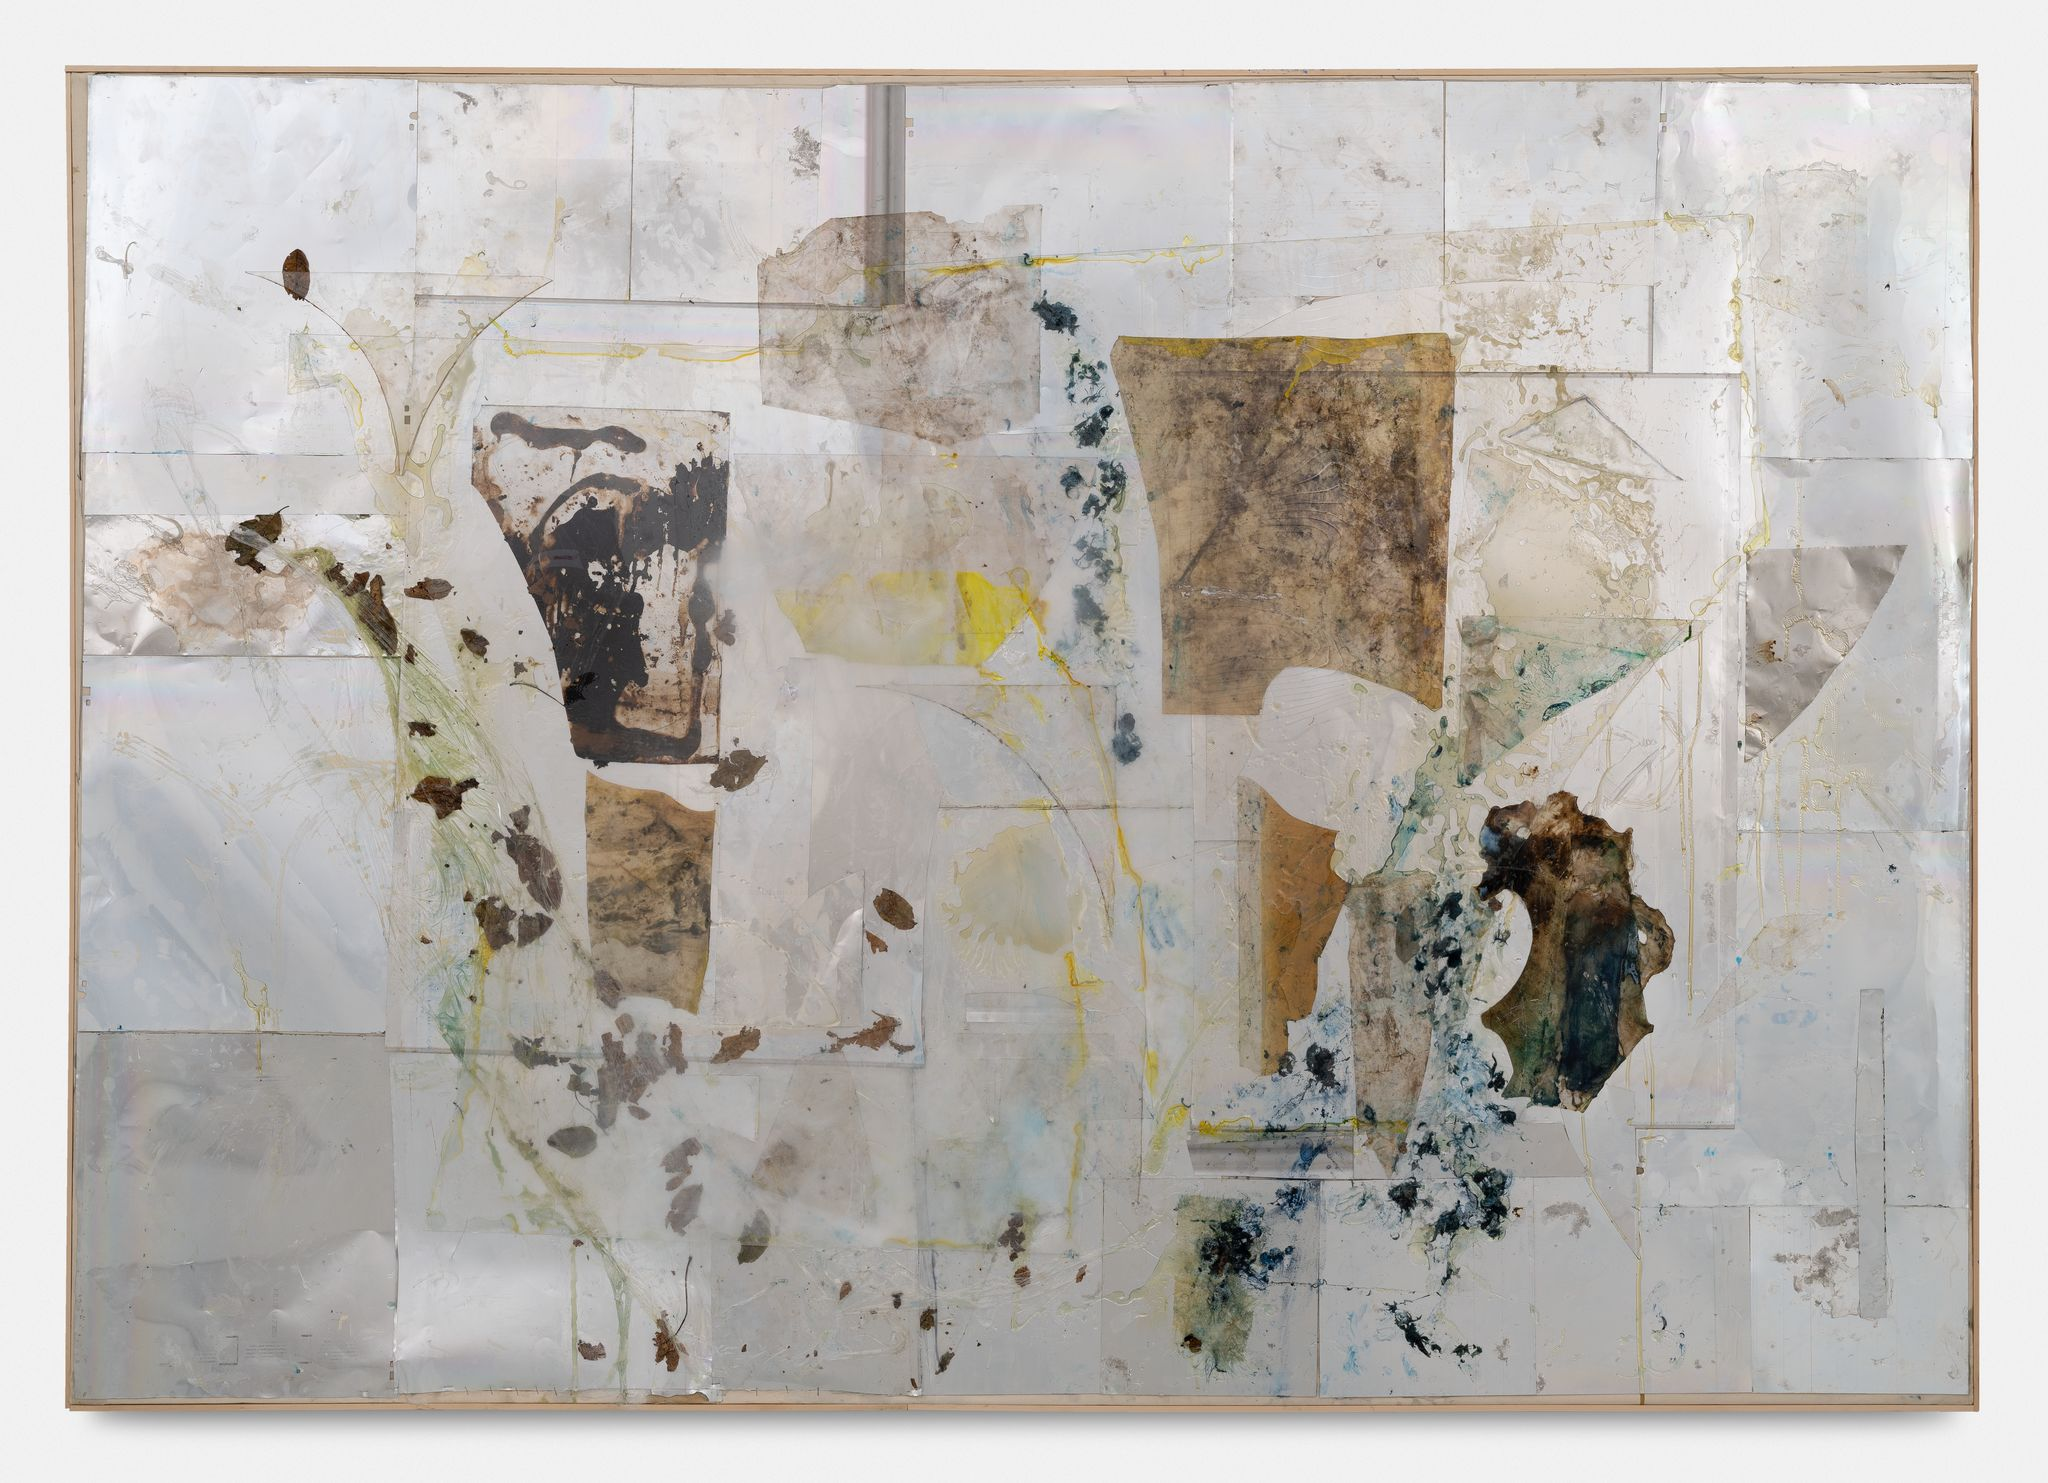 Reconstructions, 2005 Aluminium foil, plastic, acrylic glass, silicone, glue, resin, feathers, leaves, plastic foil, giments on molino canvas, in artist frame 188,4 x 266,6 cm 74 1/8 x 105 Inches. © Courtesy of the Artist and Almine Rech - Photo: Hugard & Vanoverschelde